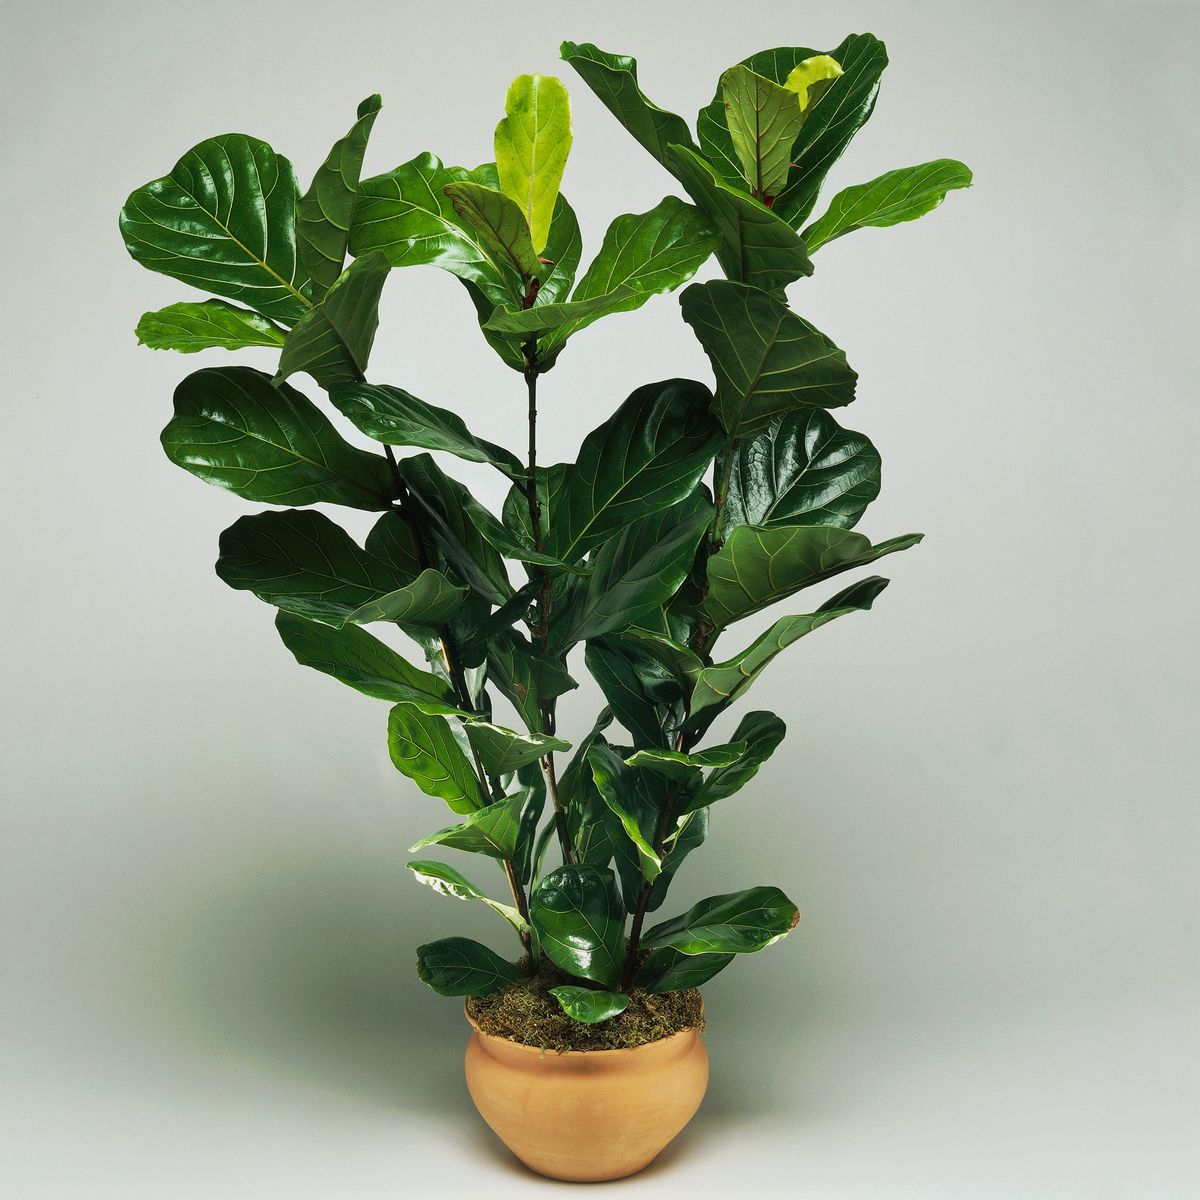 19 Best Indoor Plants On Amazon 2020 Fiddle Leaf And More The Strategist New York Magazine